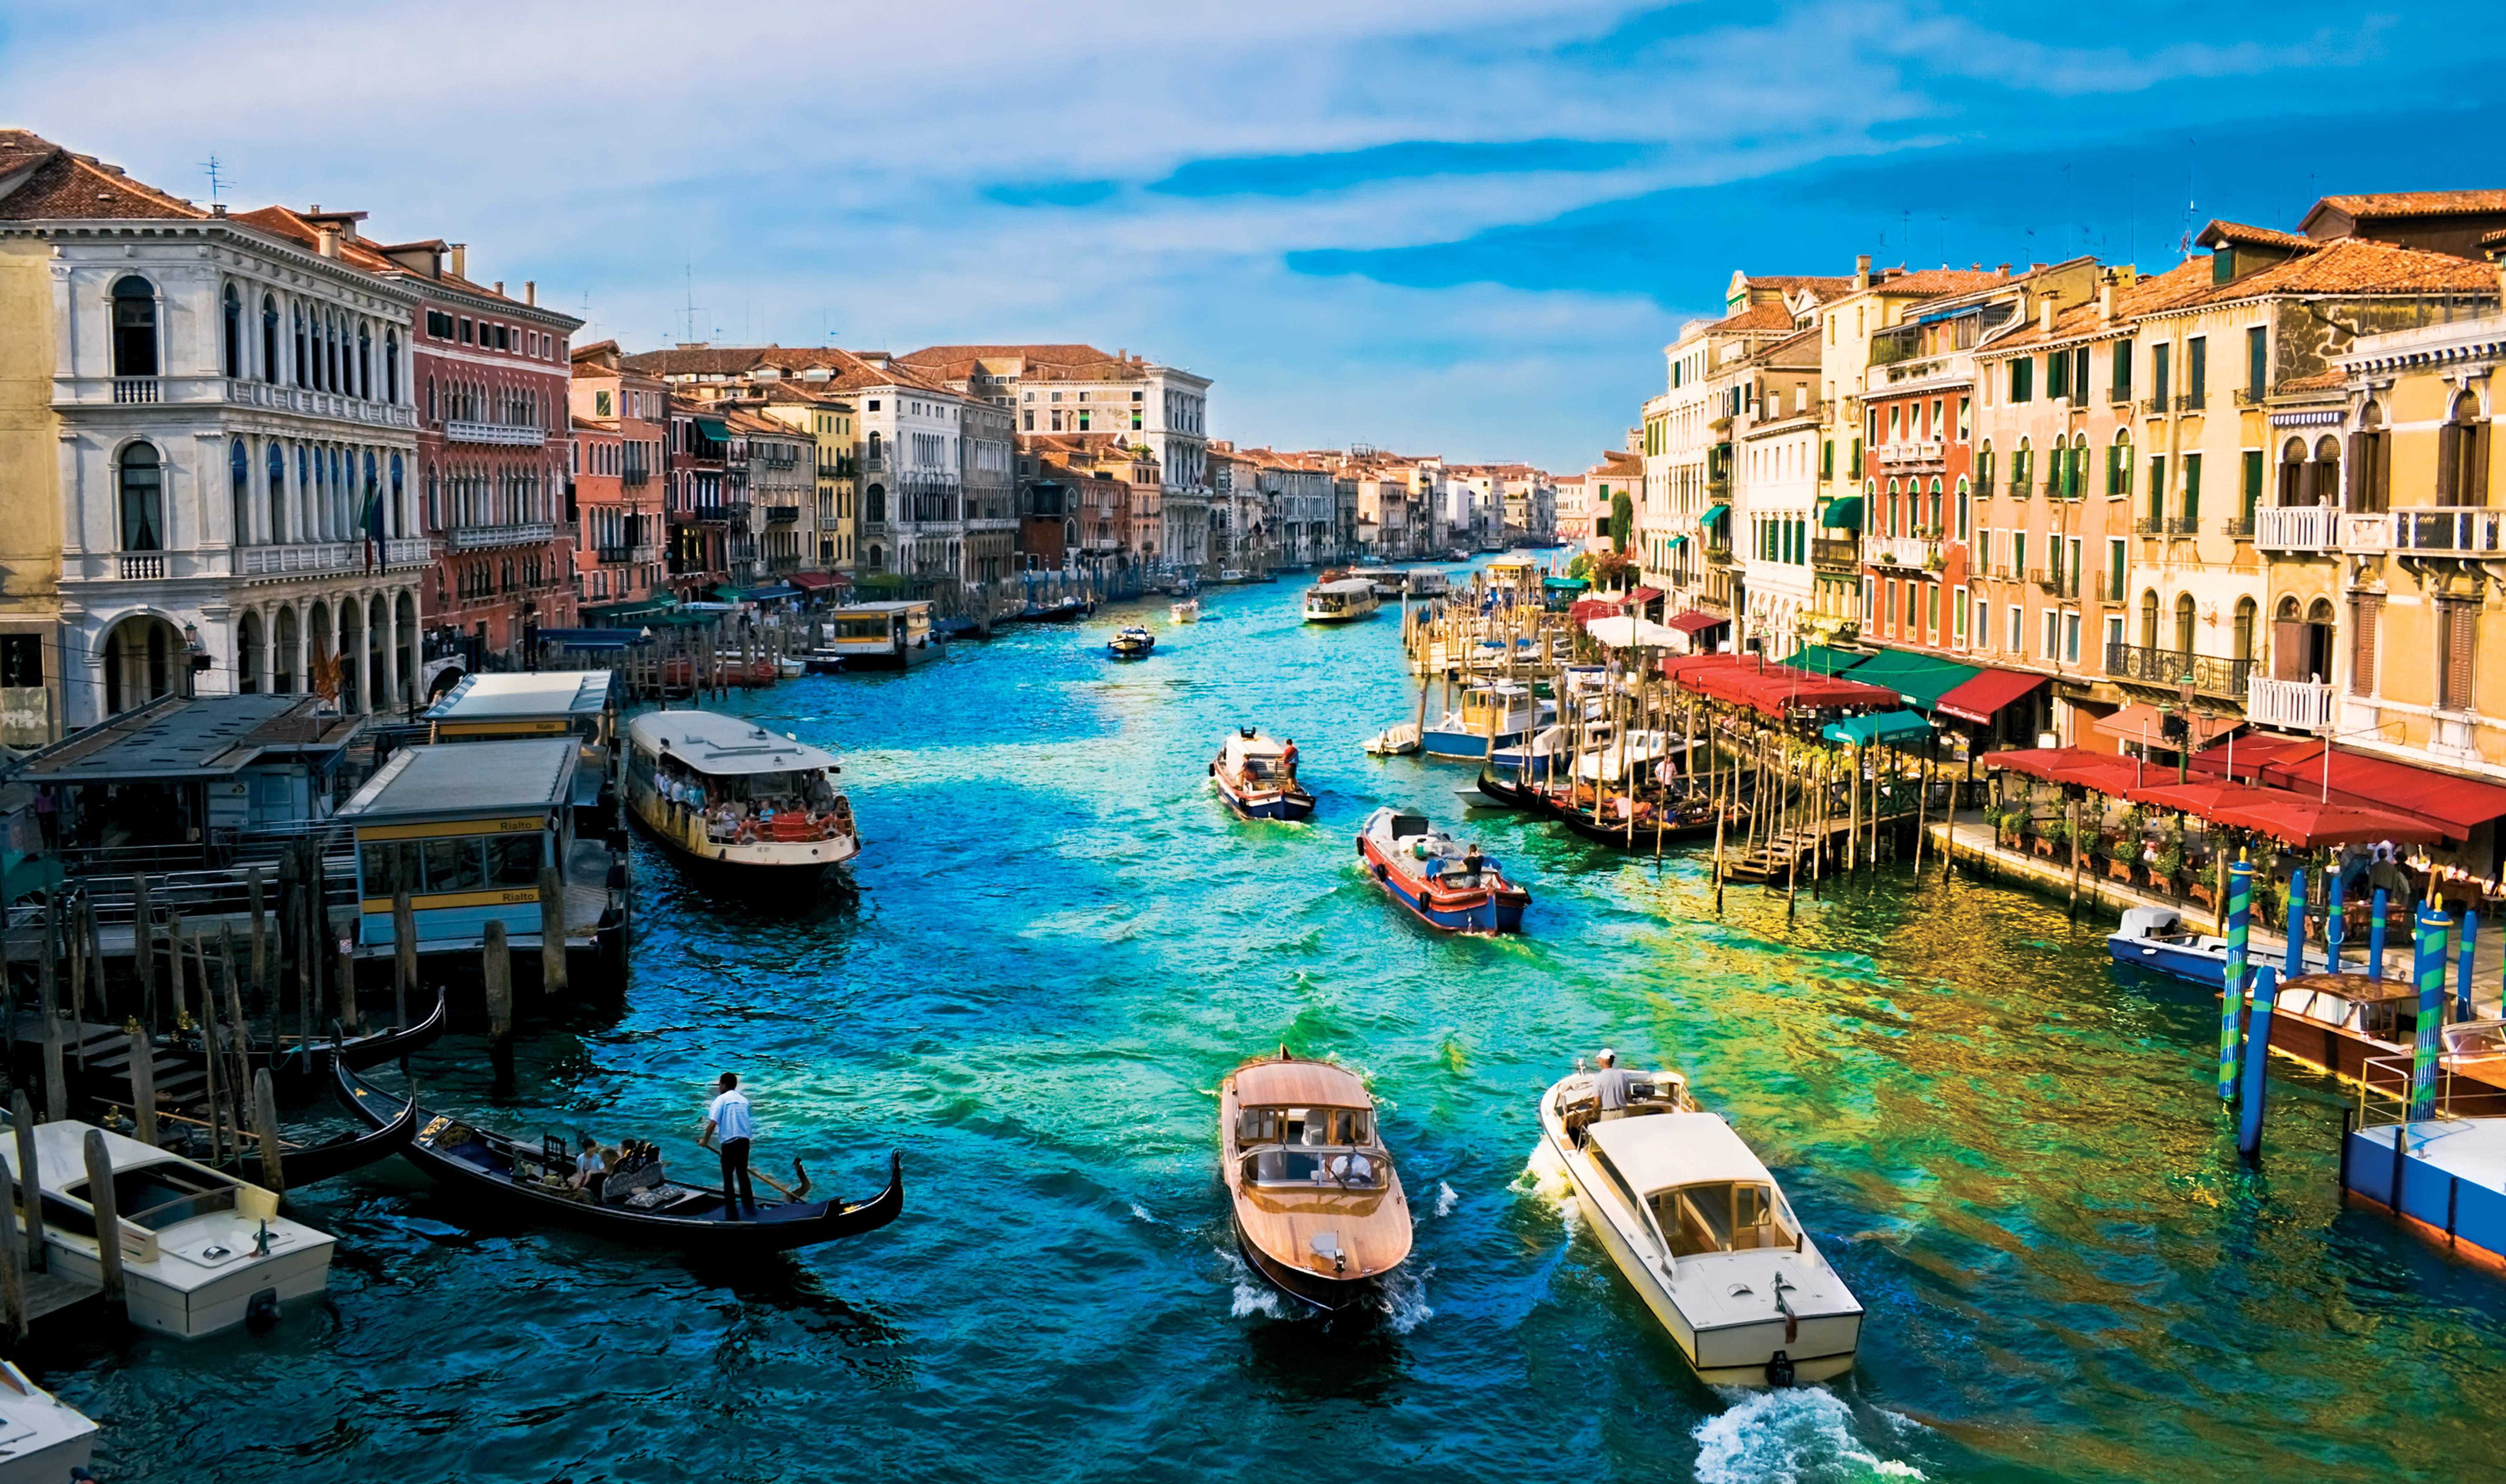 man made venice italy city grand canal canal boat wallpaper